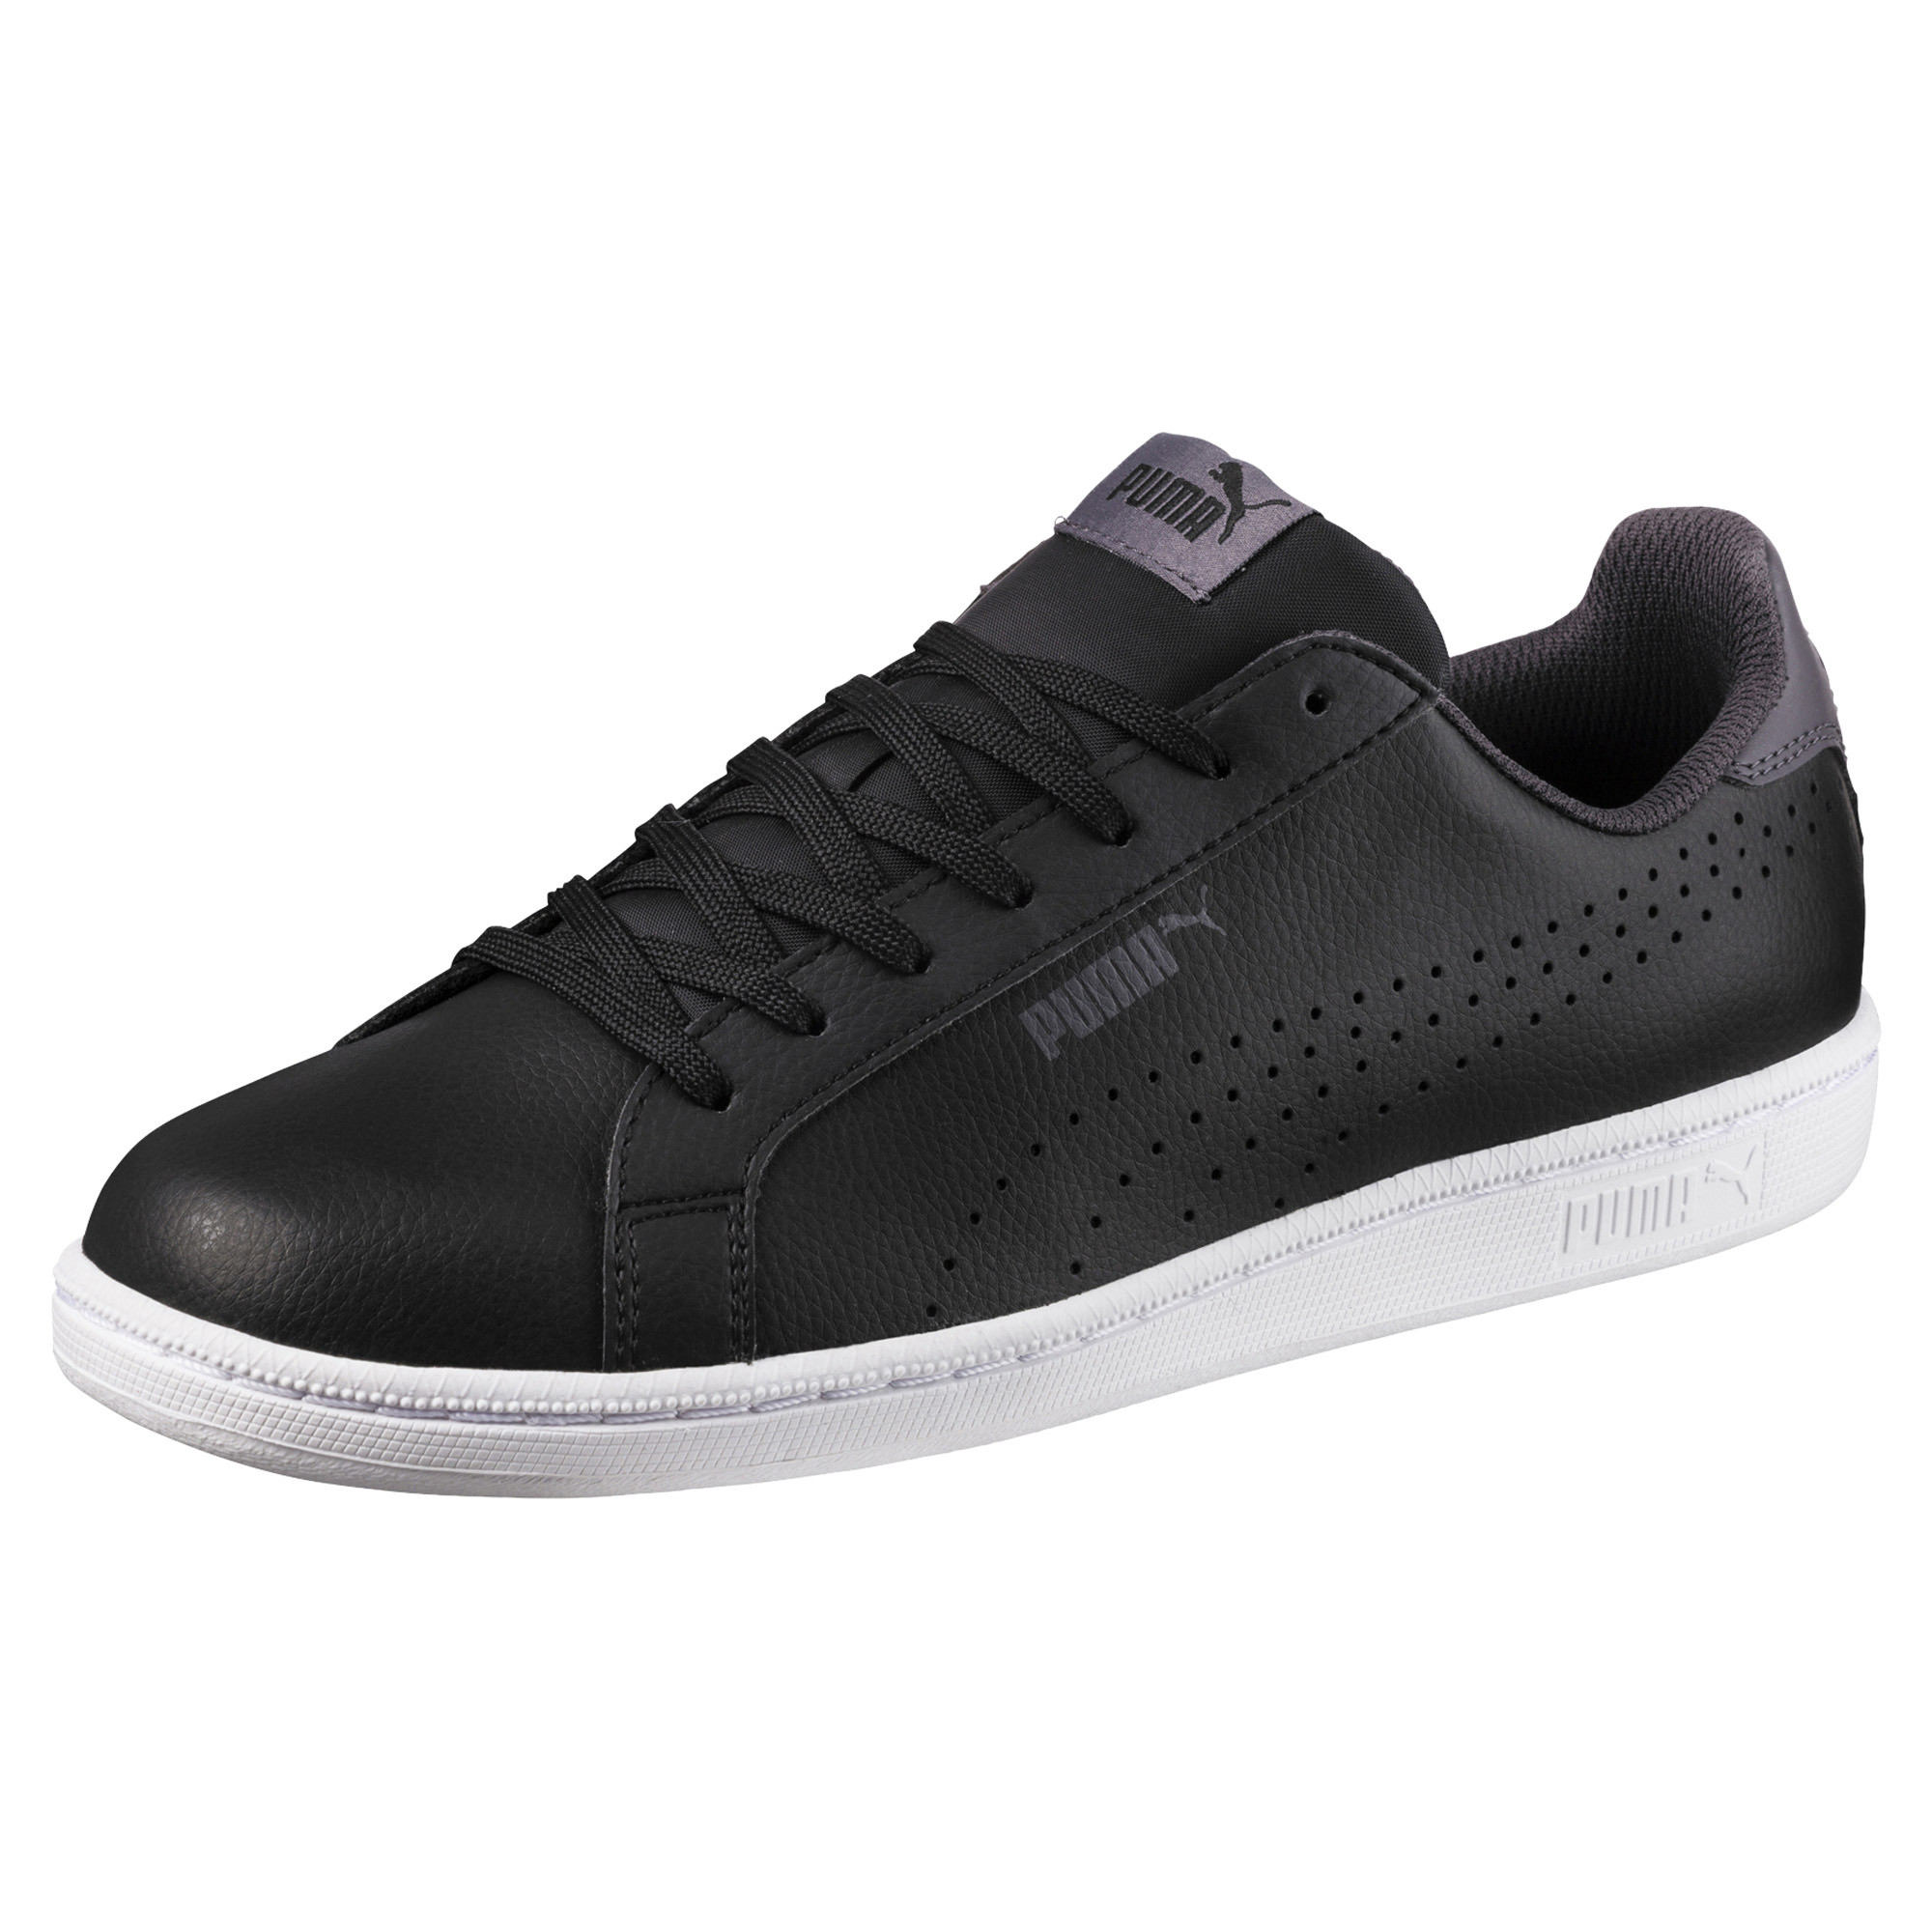 PUMA-PUMA-Smash-Perf-Men-039-s-Sneakers-Men-Shoe-Basics thumbnail 9